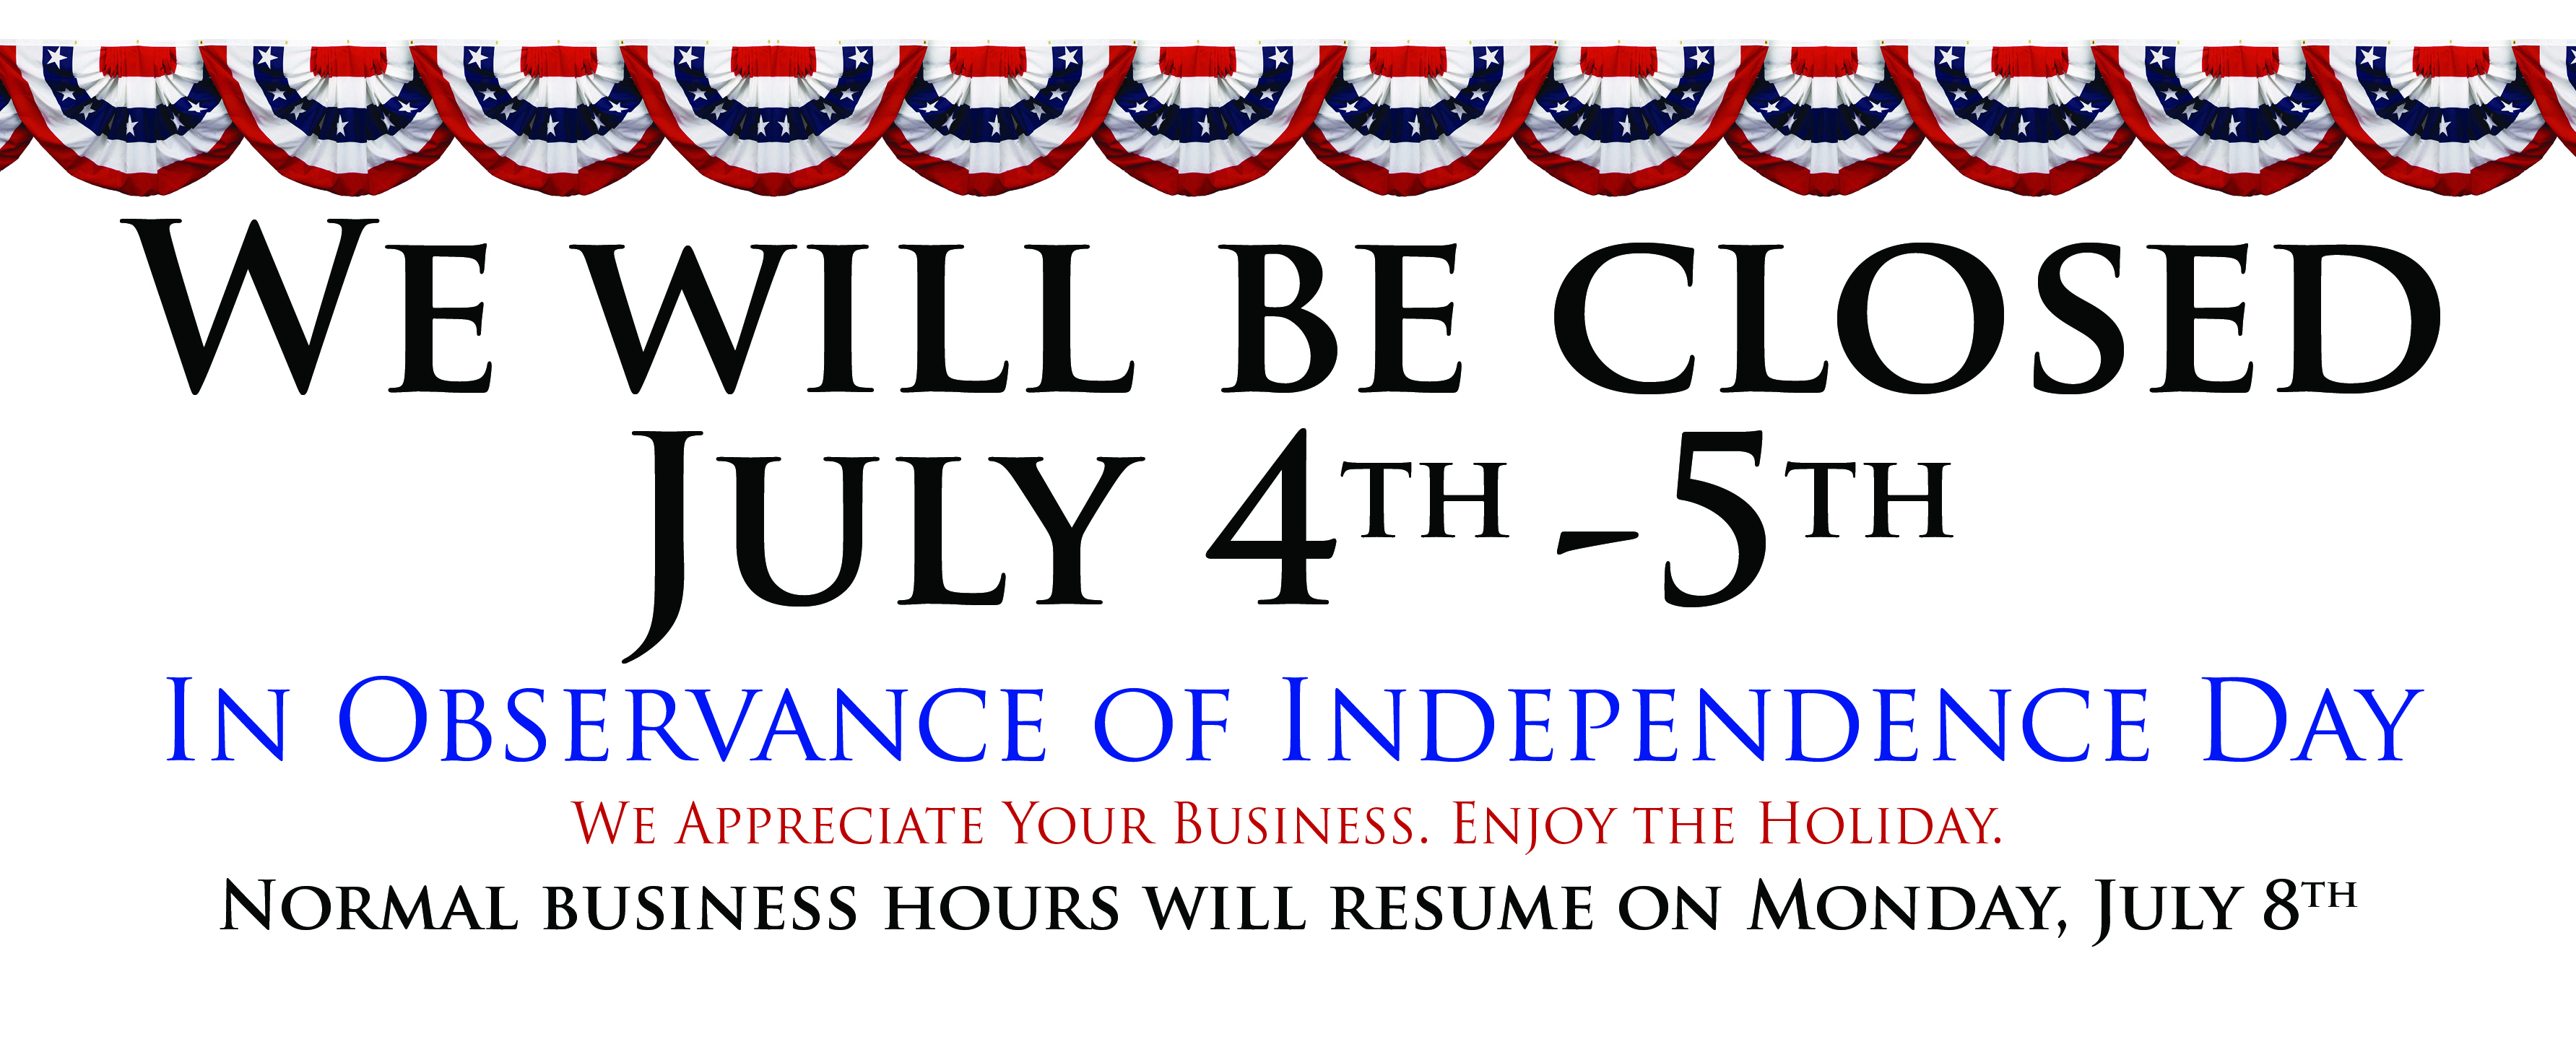 Closed Independence Day19 Facebook Banner